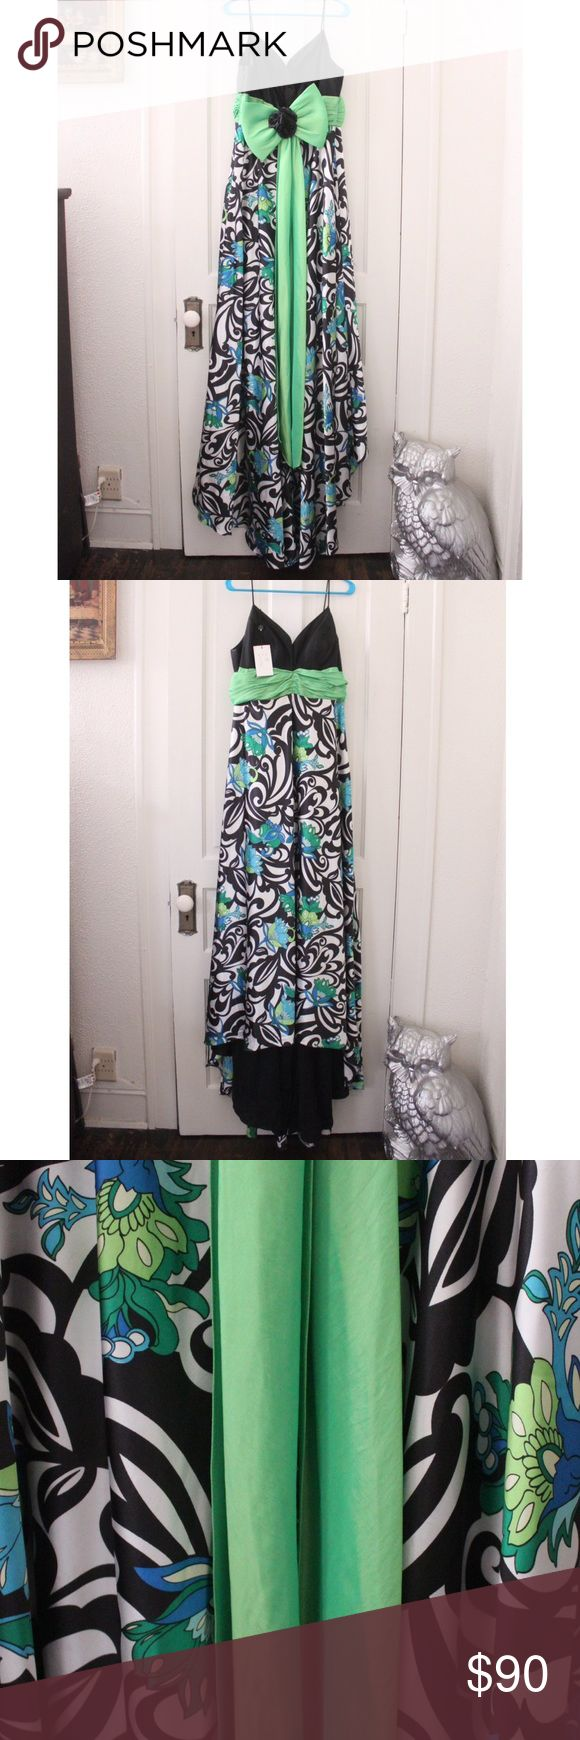 Jovani patterned prom dress w/ blue floral detail. Jovani formal/prom dress. Black and white pattern with blue and green floral detail. Stunning green bow back accent. Size 22, worn once. Jovani Dresses Prom